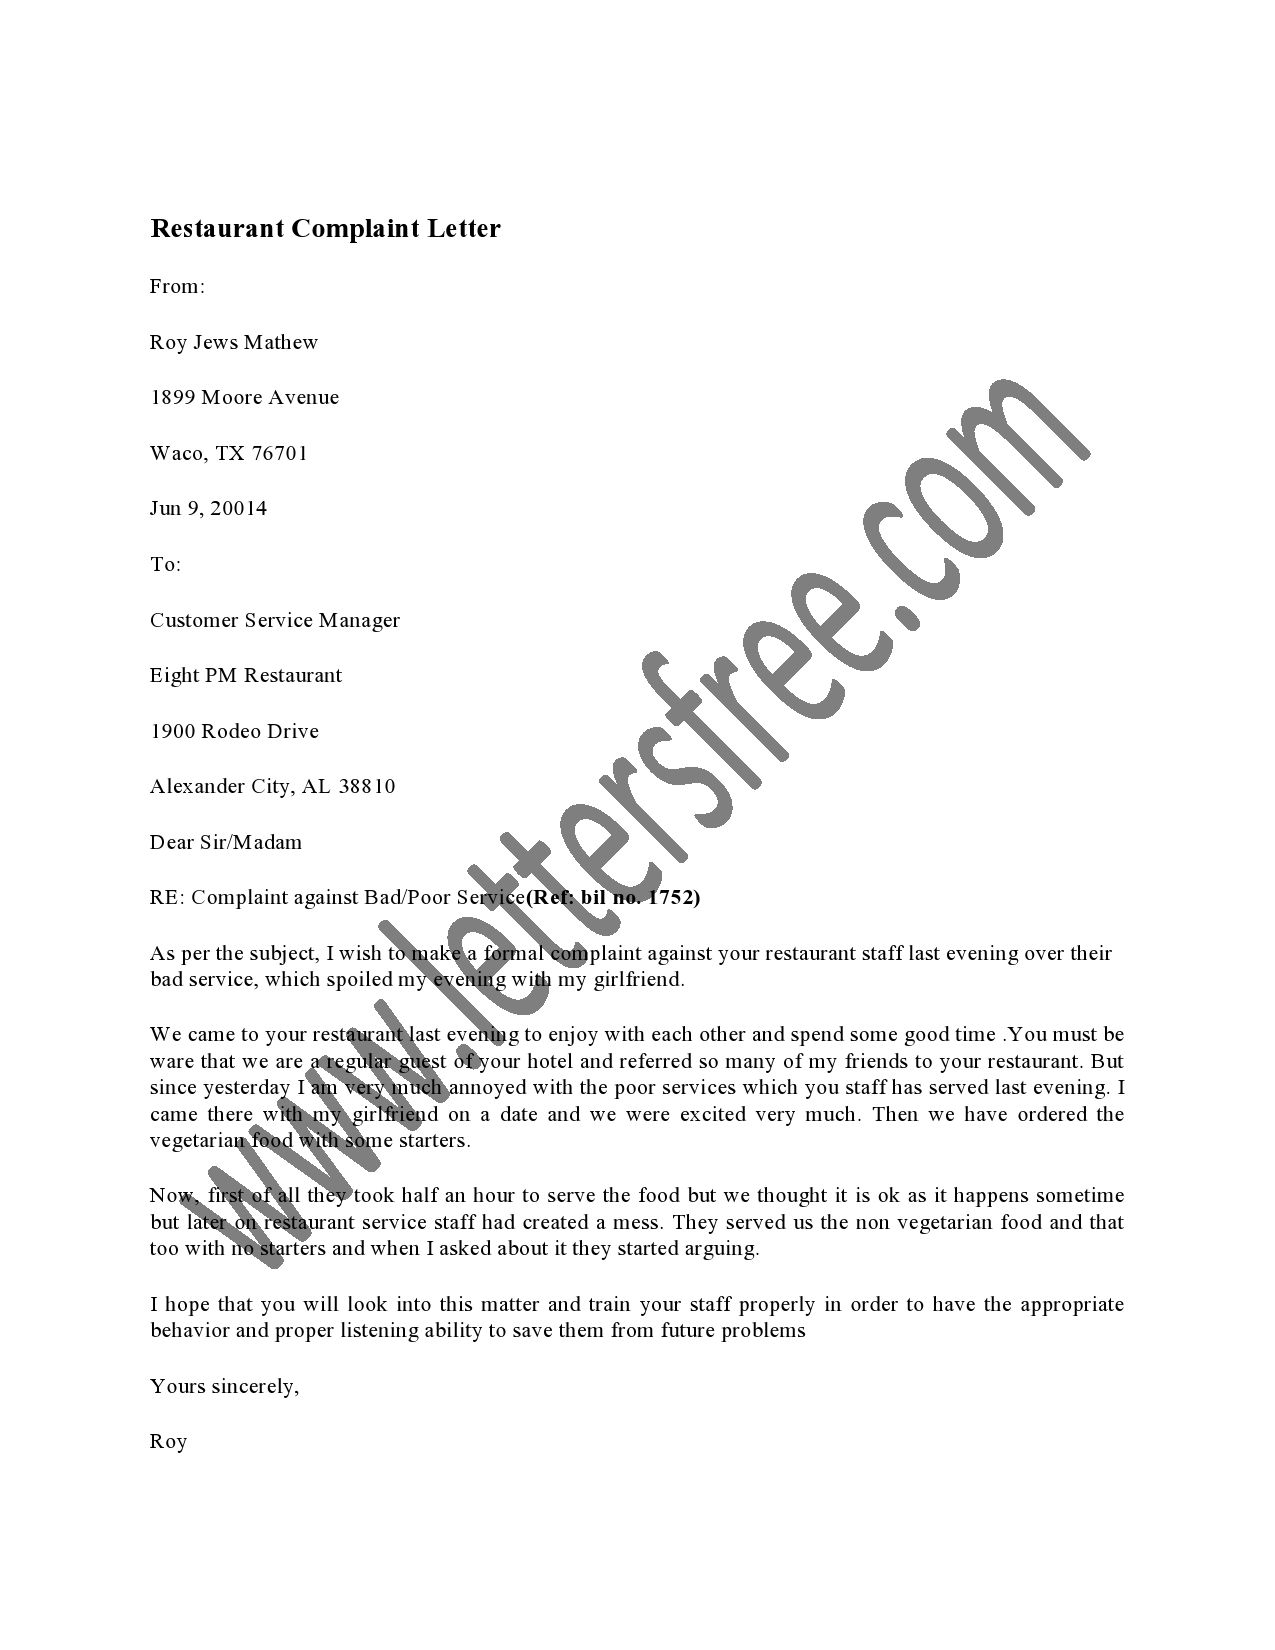 A Restaurant Complaint Letter Is Usually Sent By